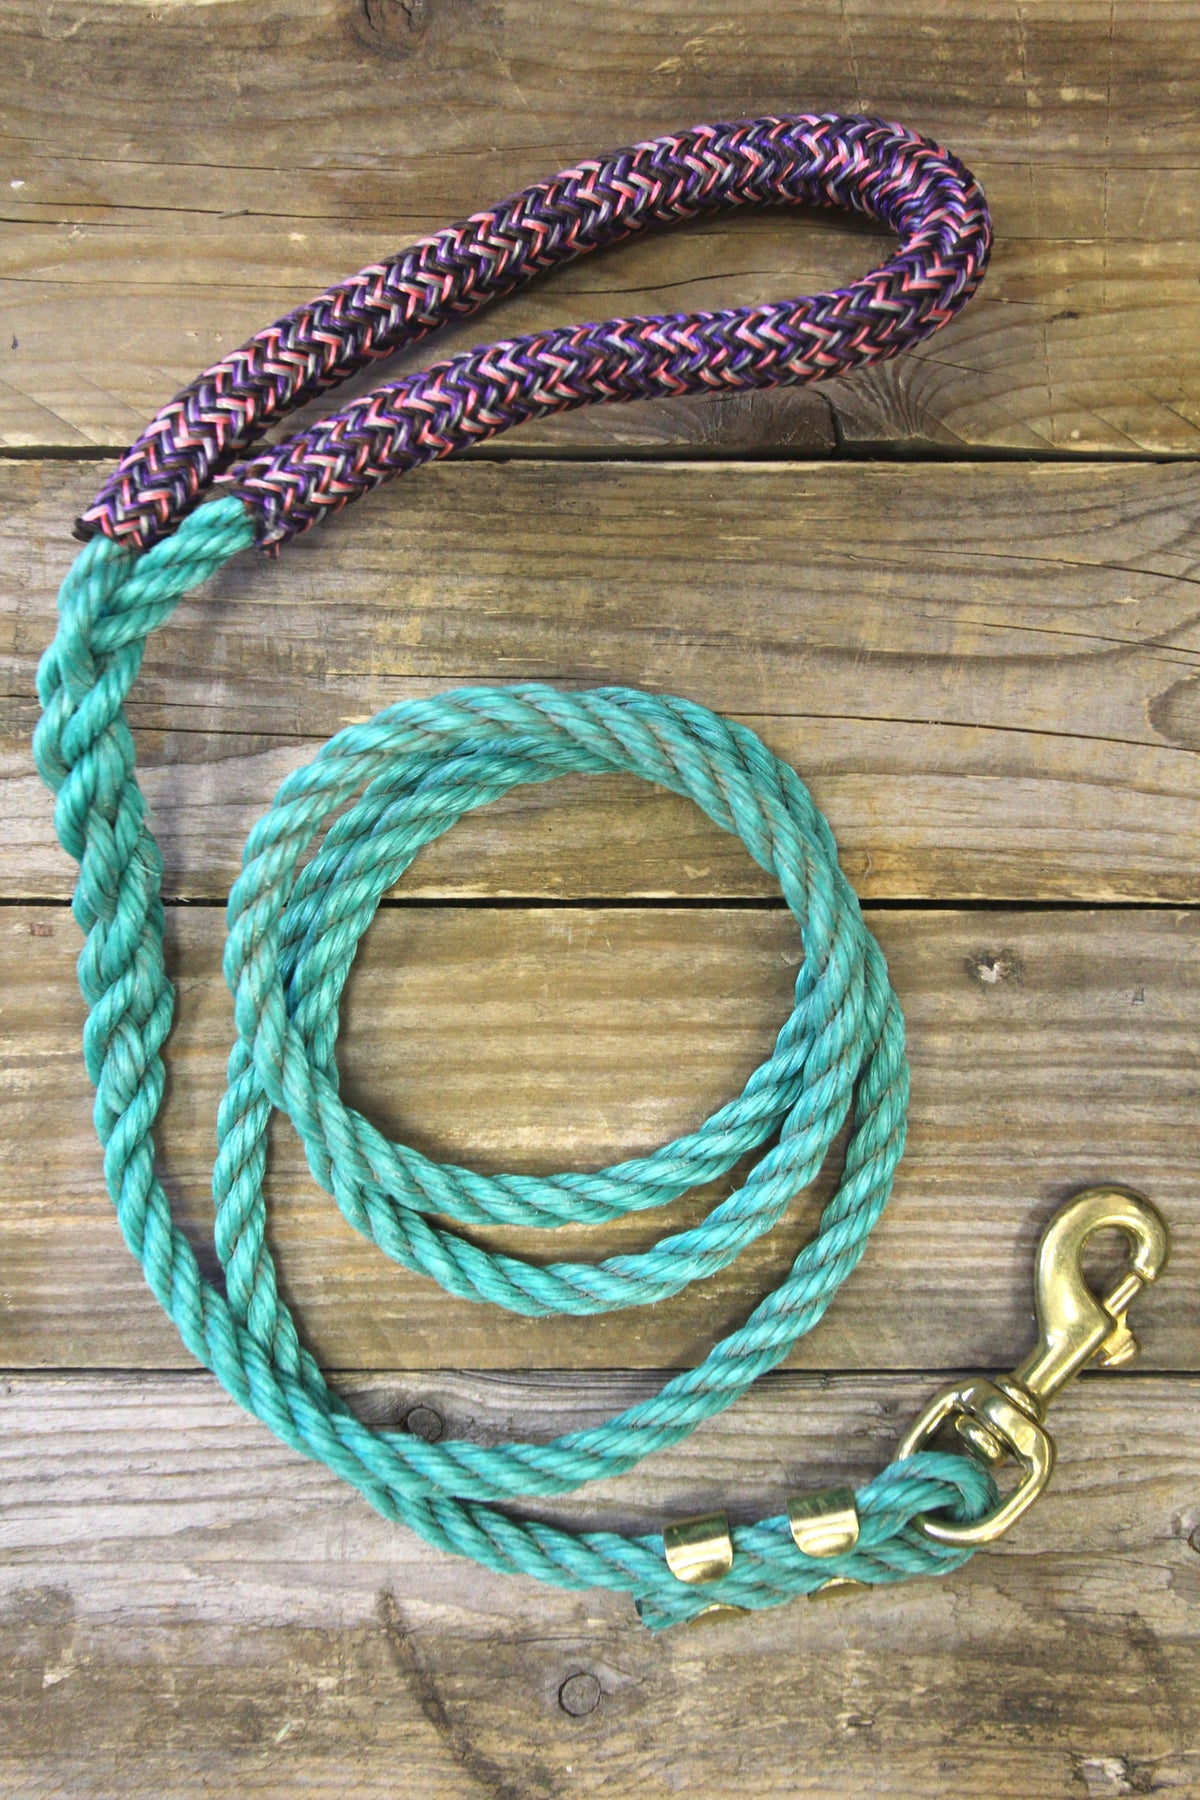 Mac's Mats Recycled Rope Leash